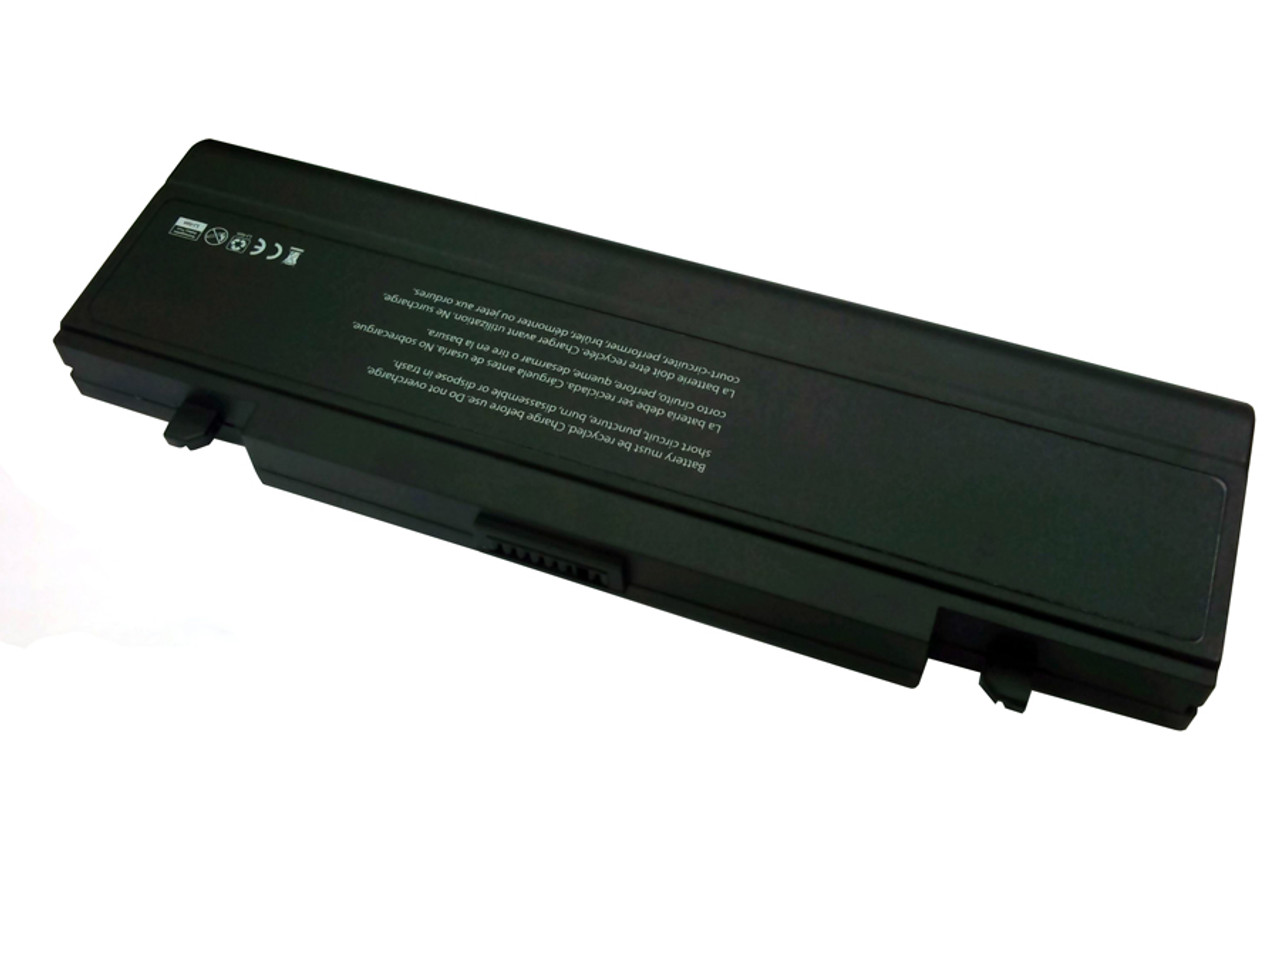 Samsung R40 R60 R70 Q310 Q360 X460 battery